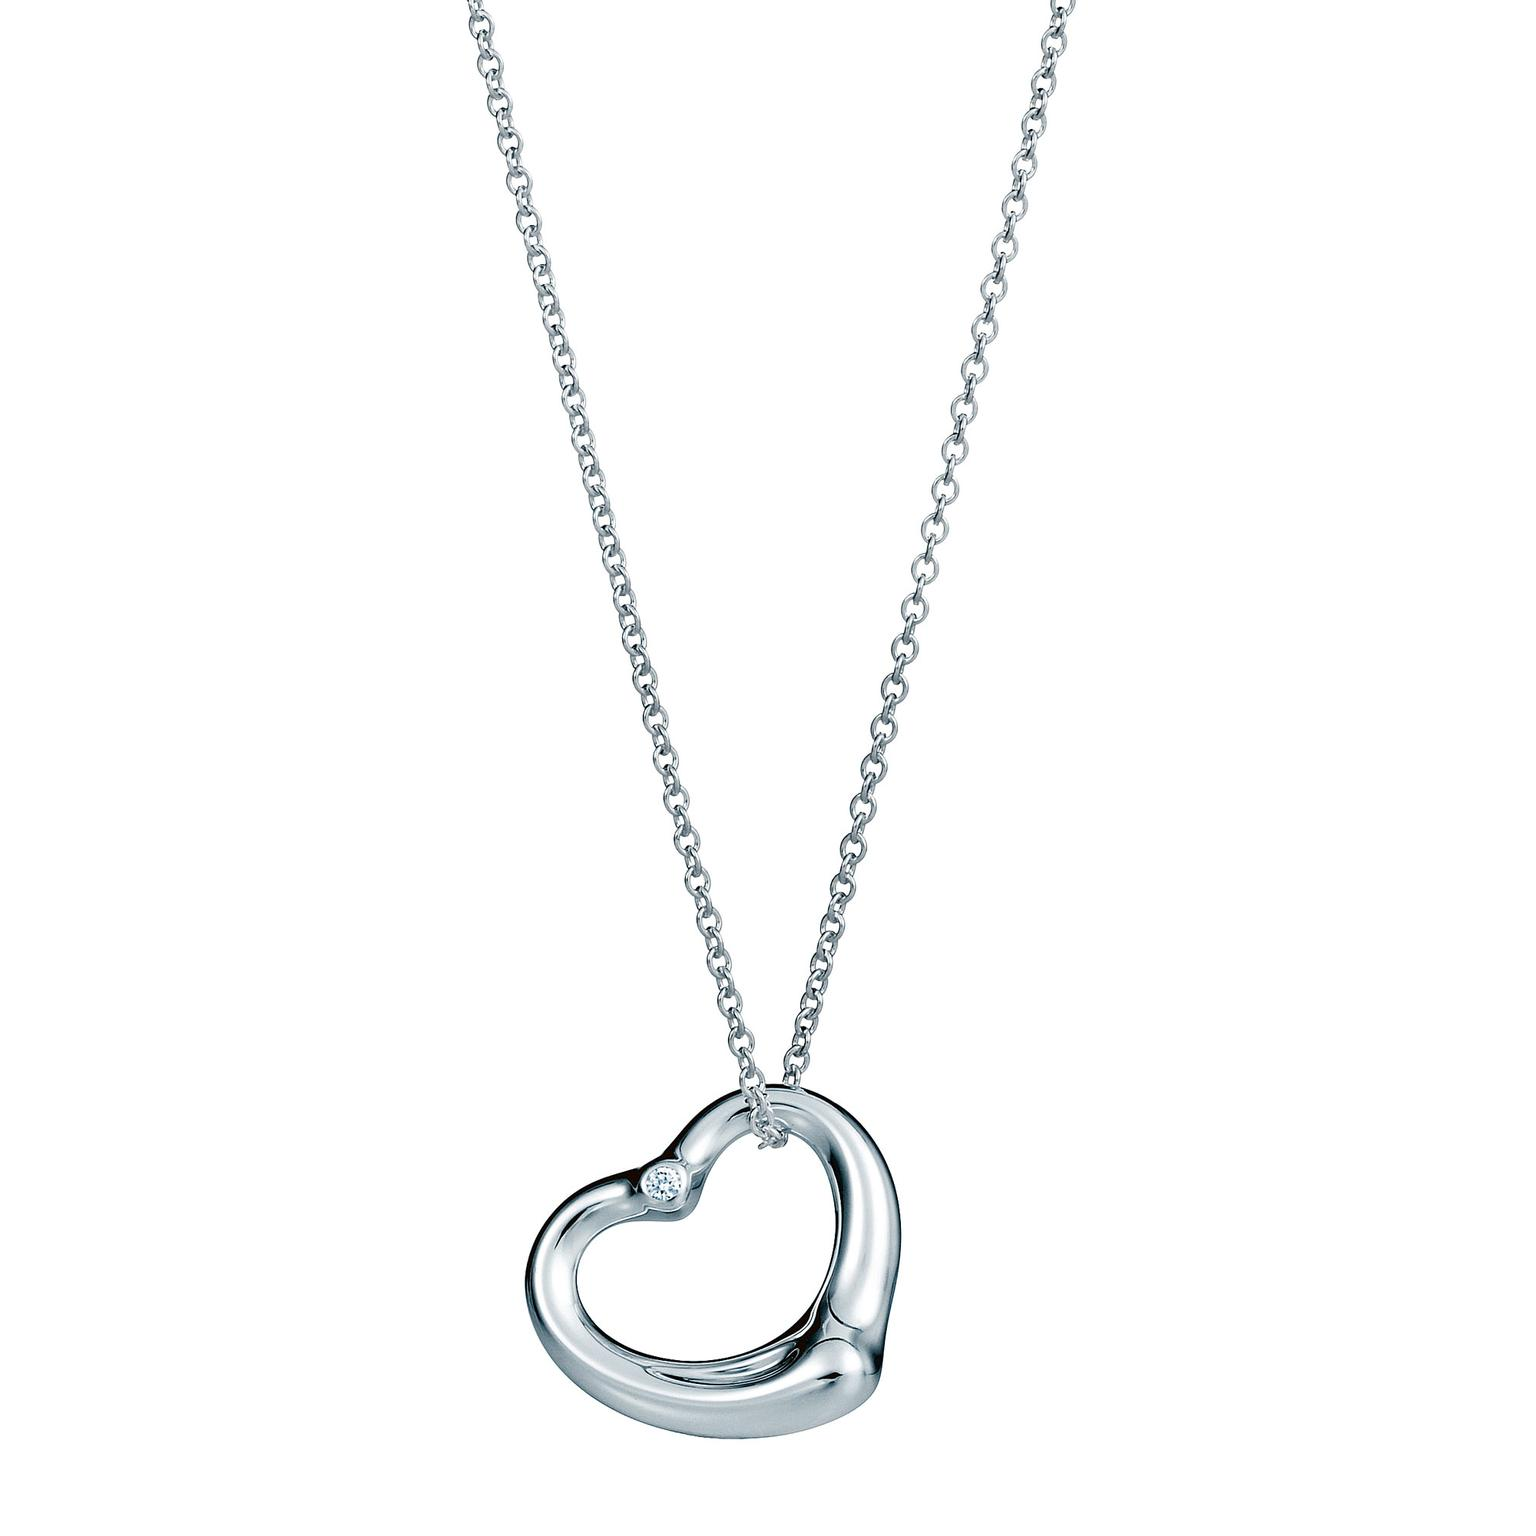 Elsa Peretti Open Heart diamond necklace in silver